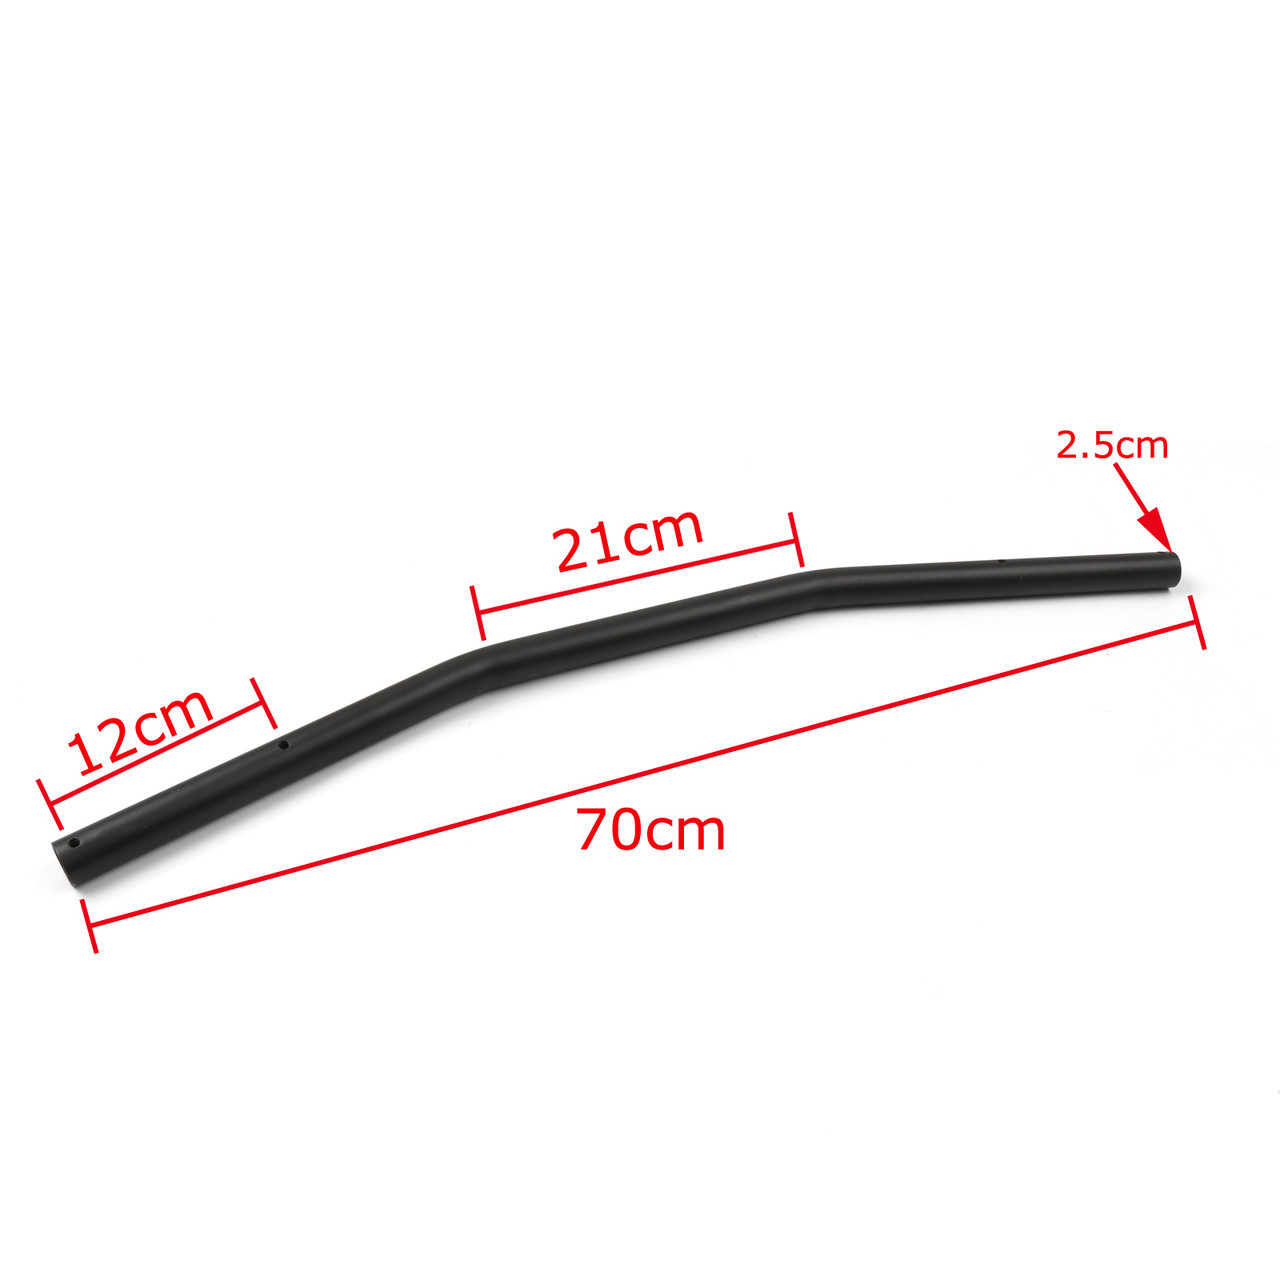 "1"" 25mm Handlebar Drag Bar Motorcycle Universal Harley Yamaha Suzuki Kawasaki VTX Shadow Black"